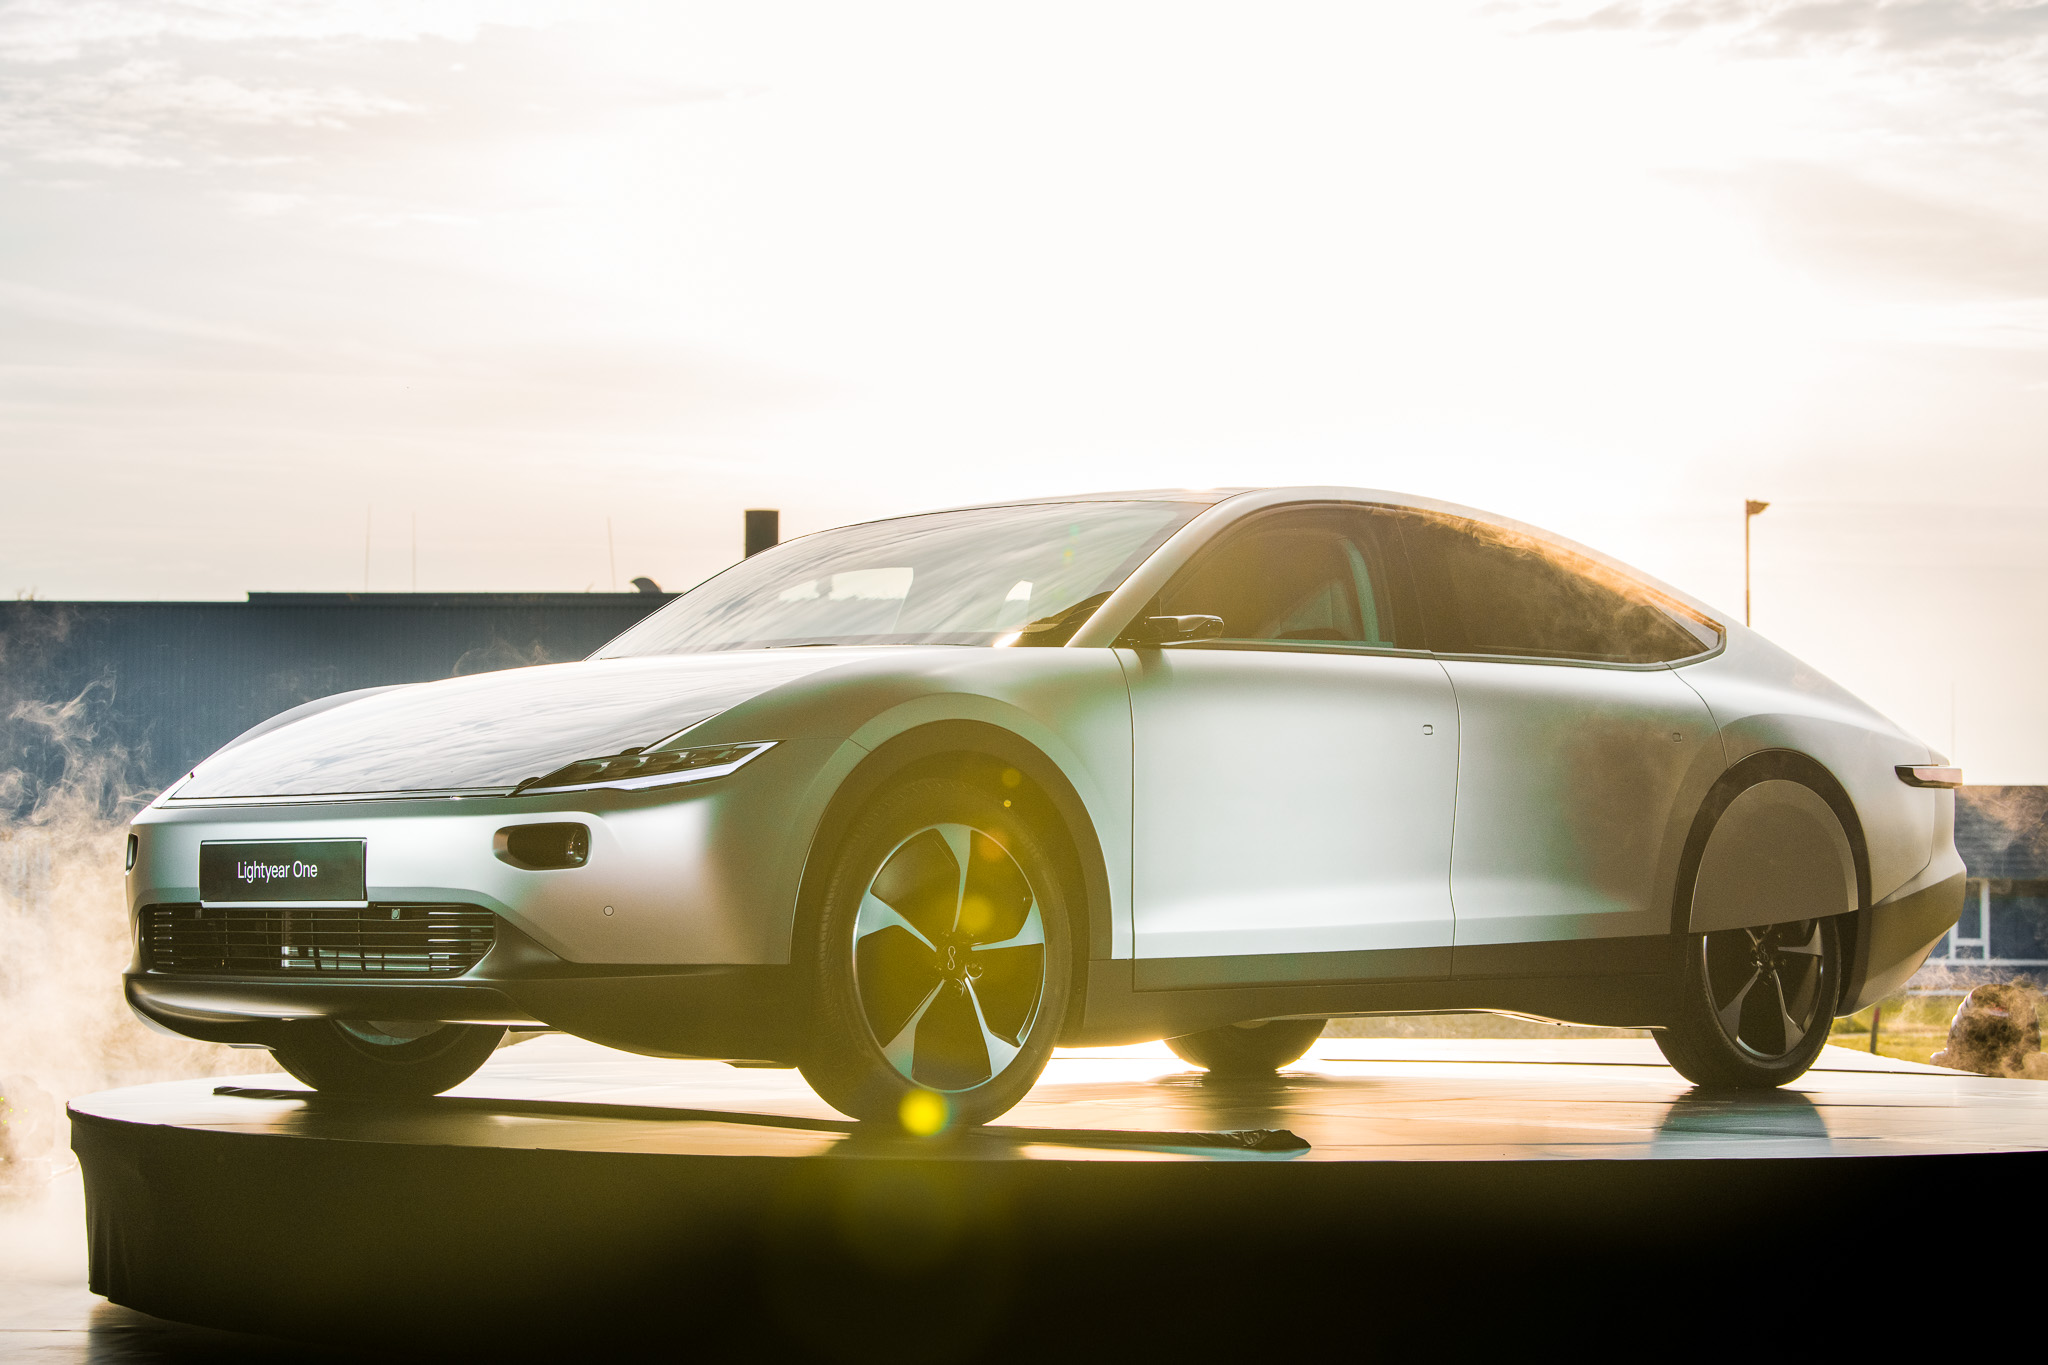 lightyear-one-concept-car-energia-solare